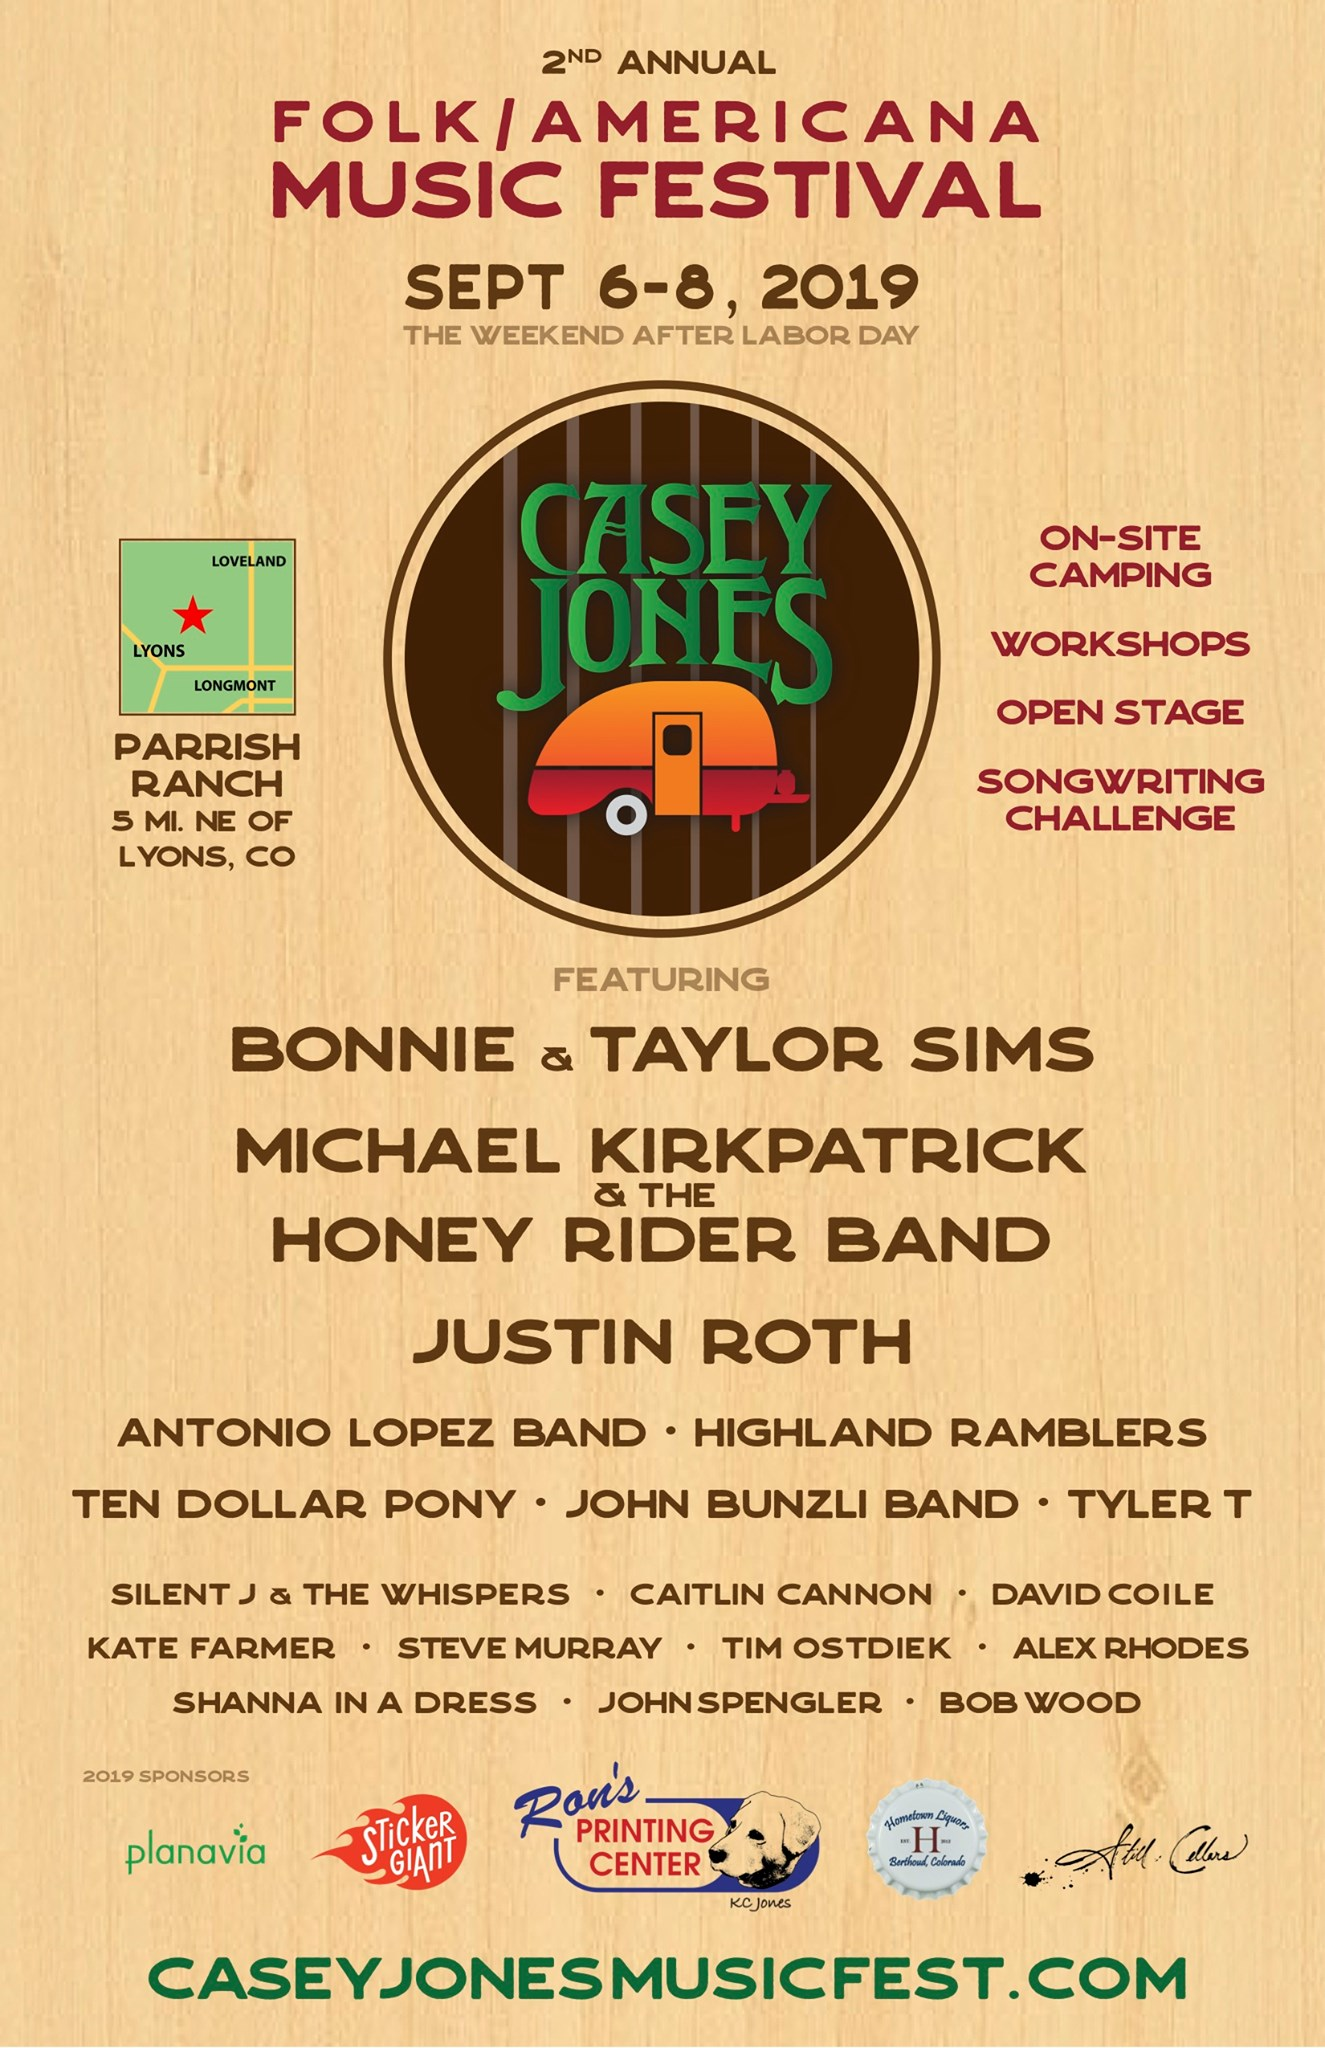 CASEY JONES MUSIC FESTIVAL